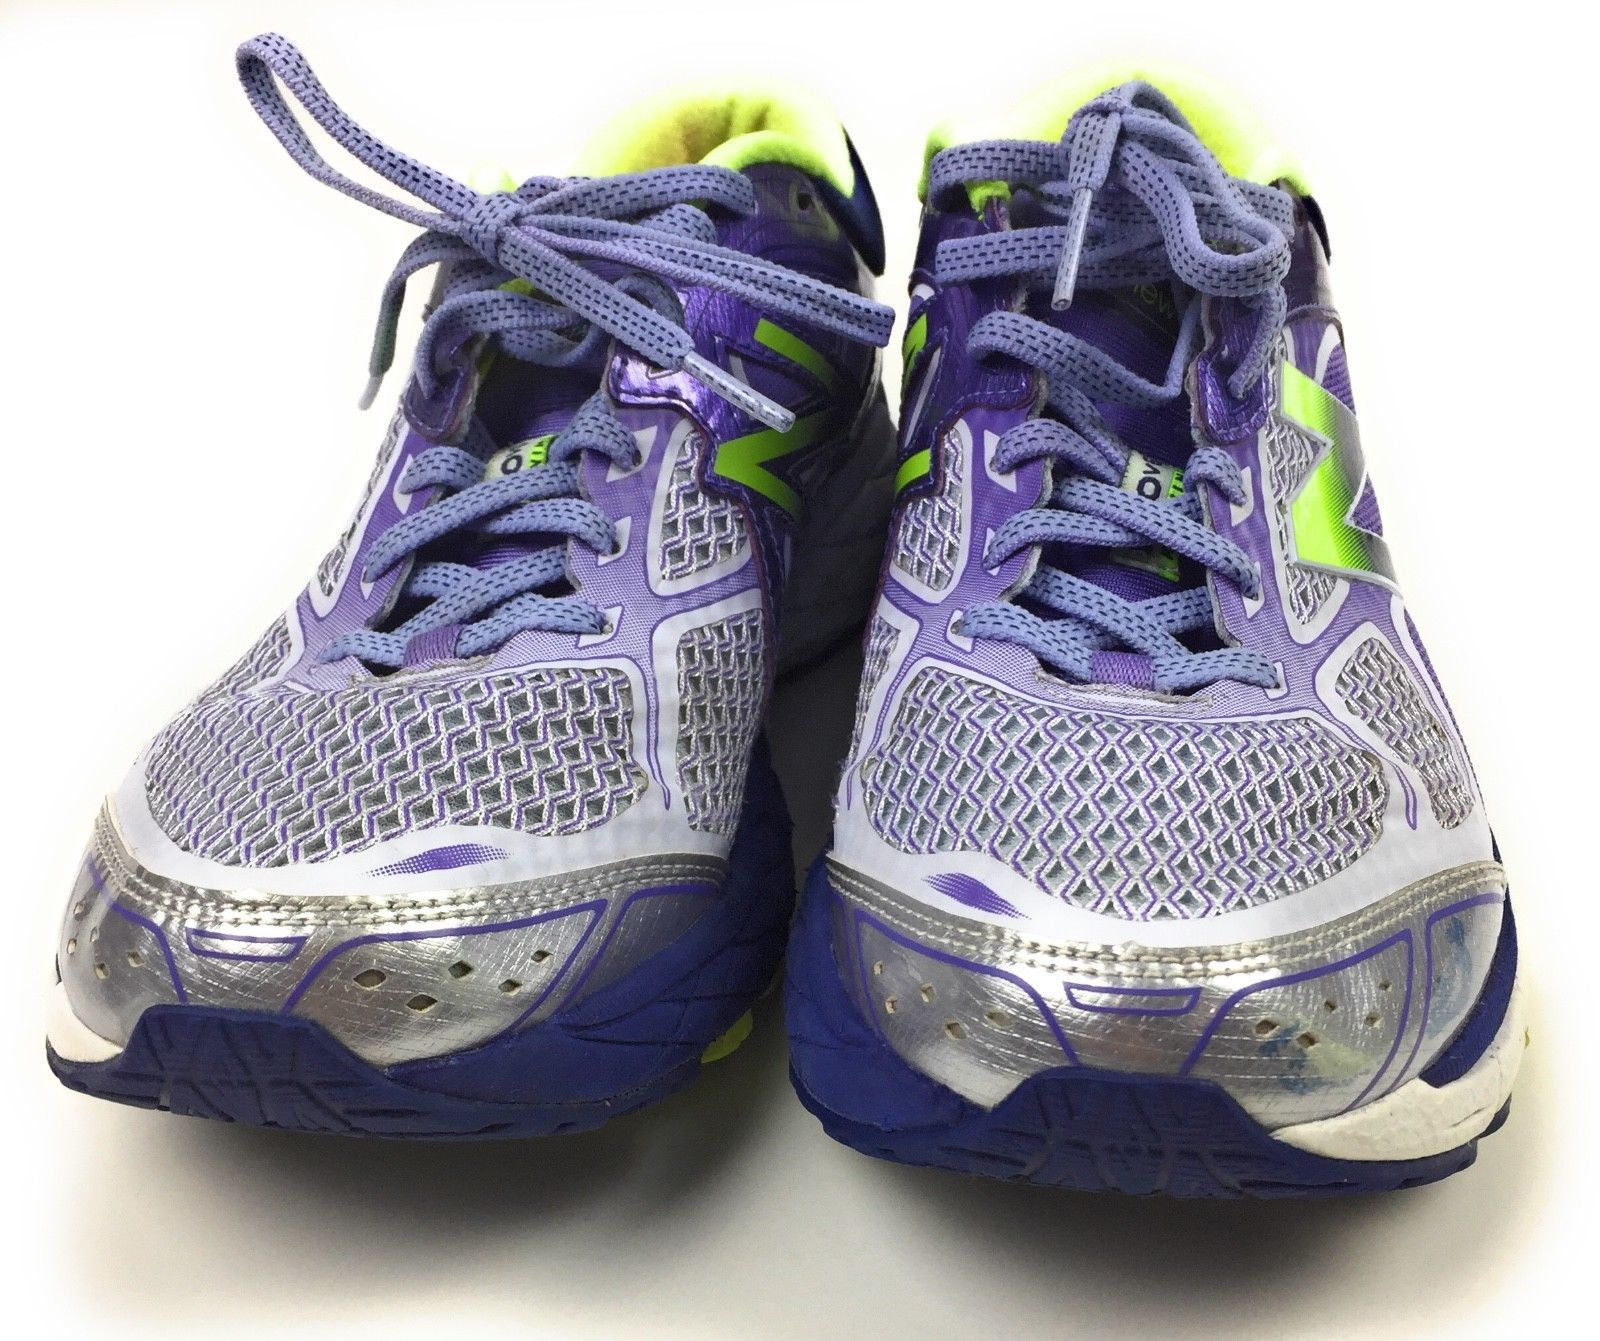 New Balance 860v6 Athletic Running Shoes W860GP8 Purple Green Women's Size 8 US image 3